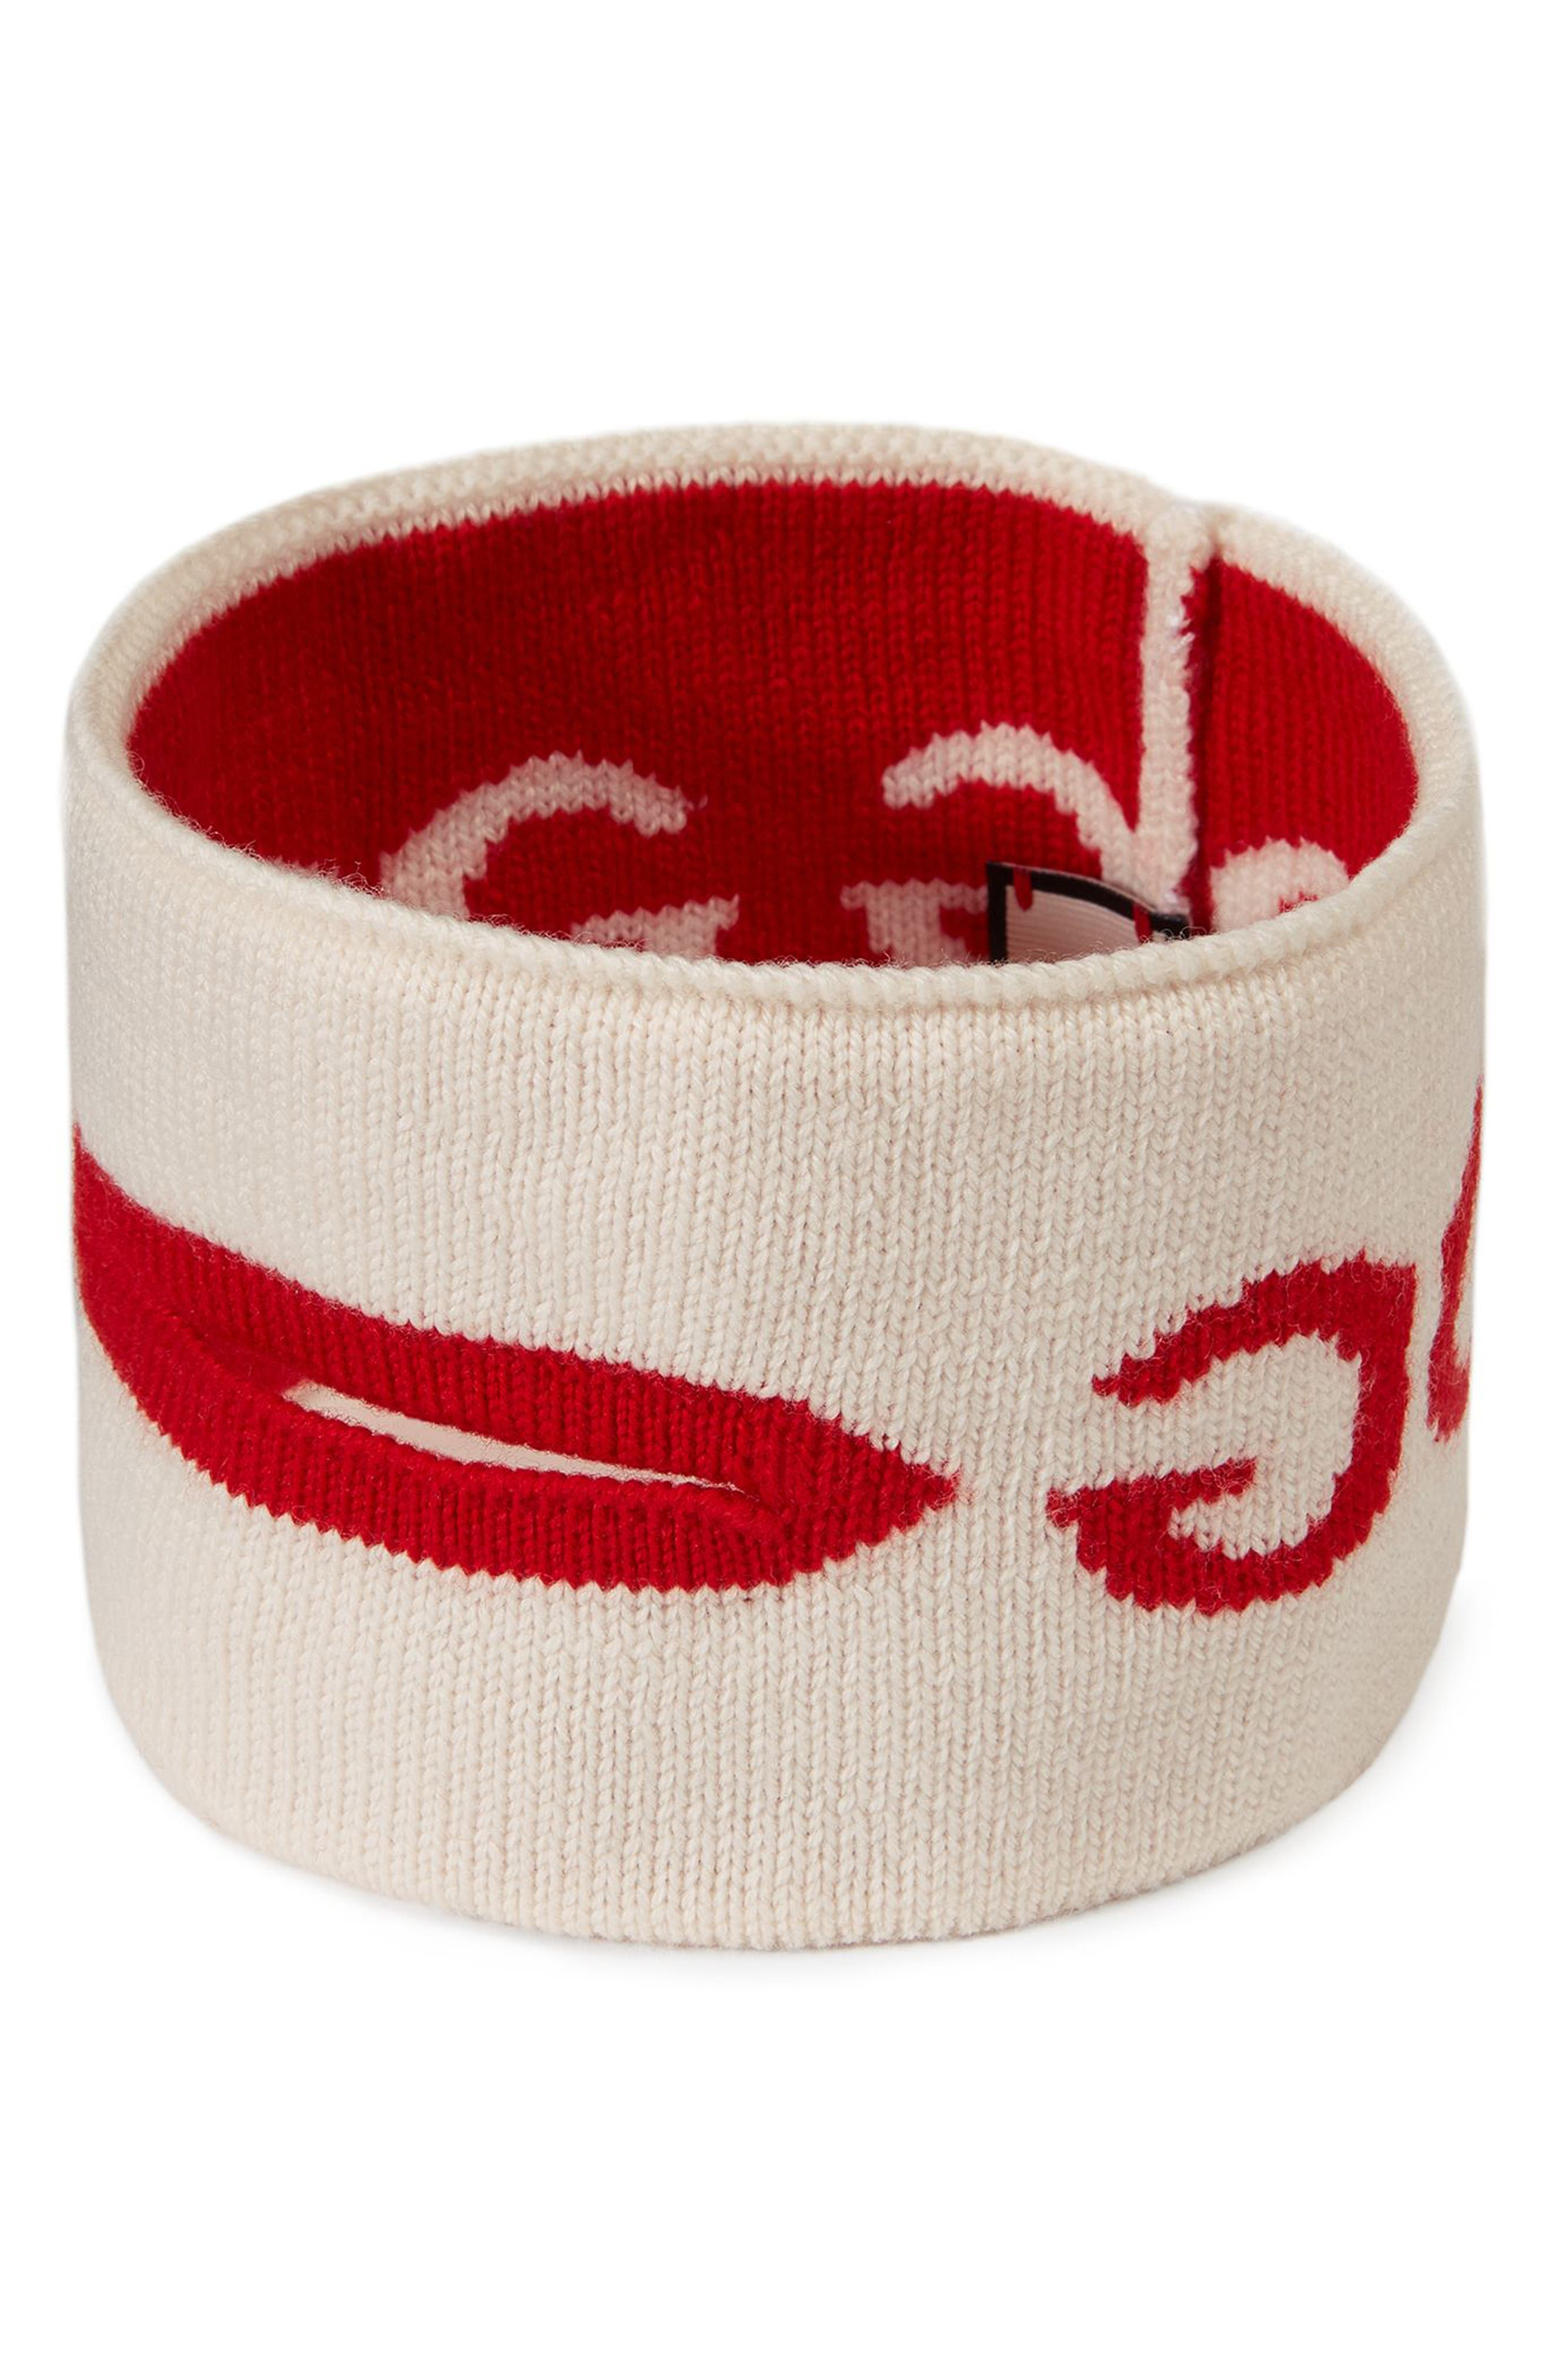 GG Mouth Wool Mask,                             Main thumbnail 1, color,                             100